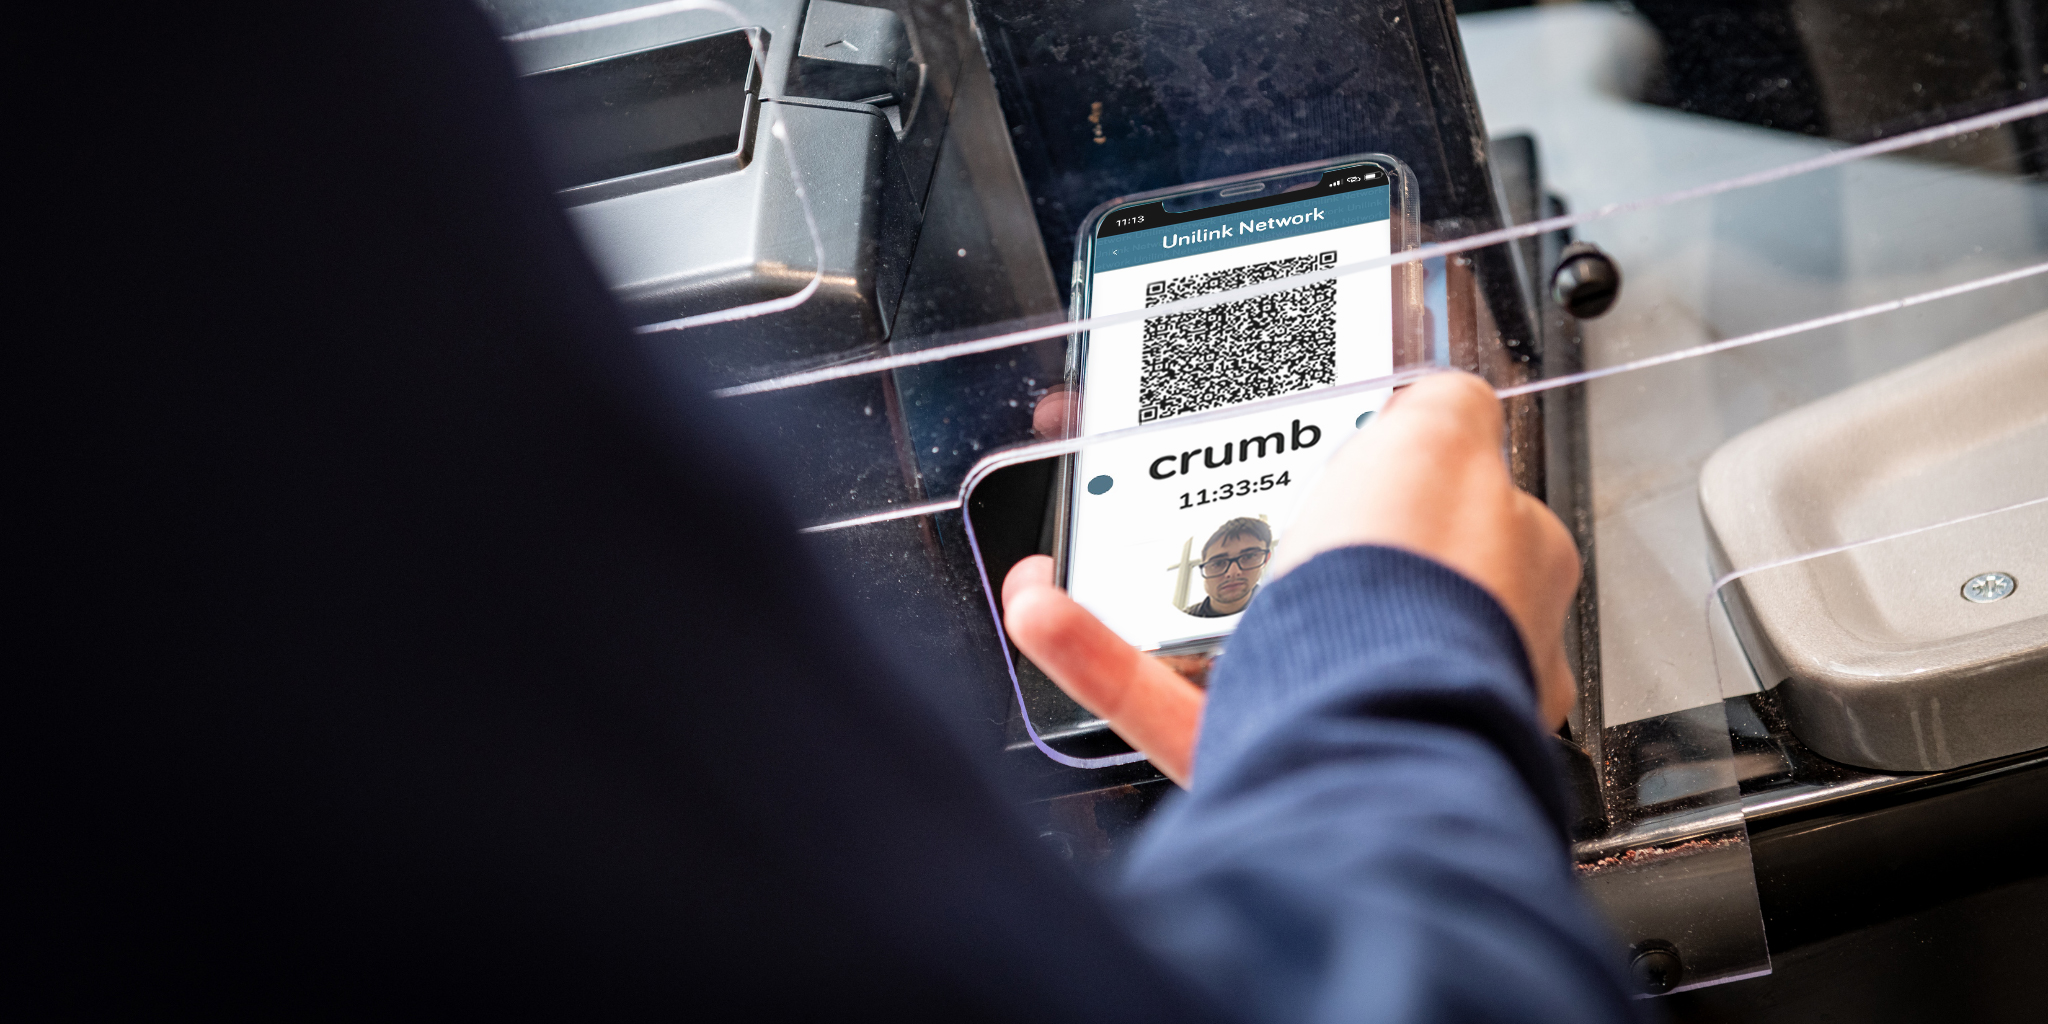 unilink mobile ticket in action